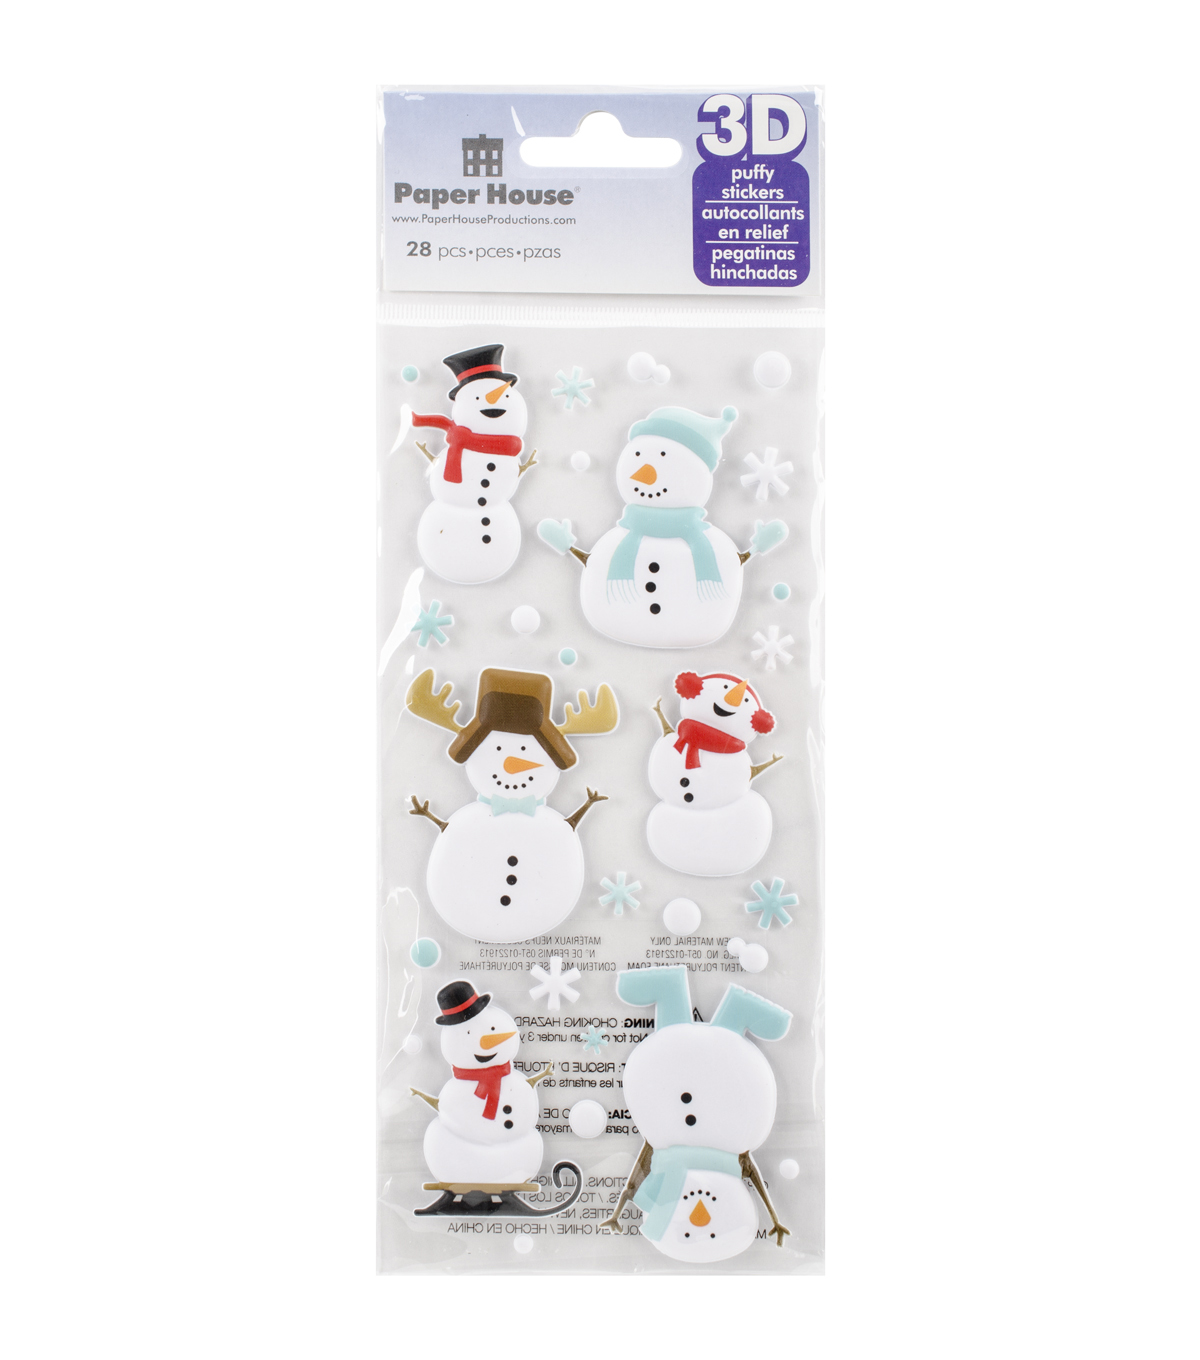 Paper House® Puffy Stickers-Snowman